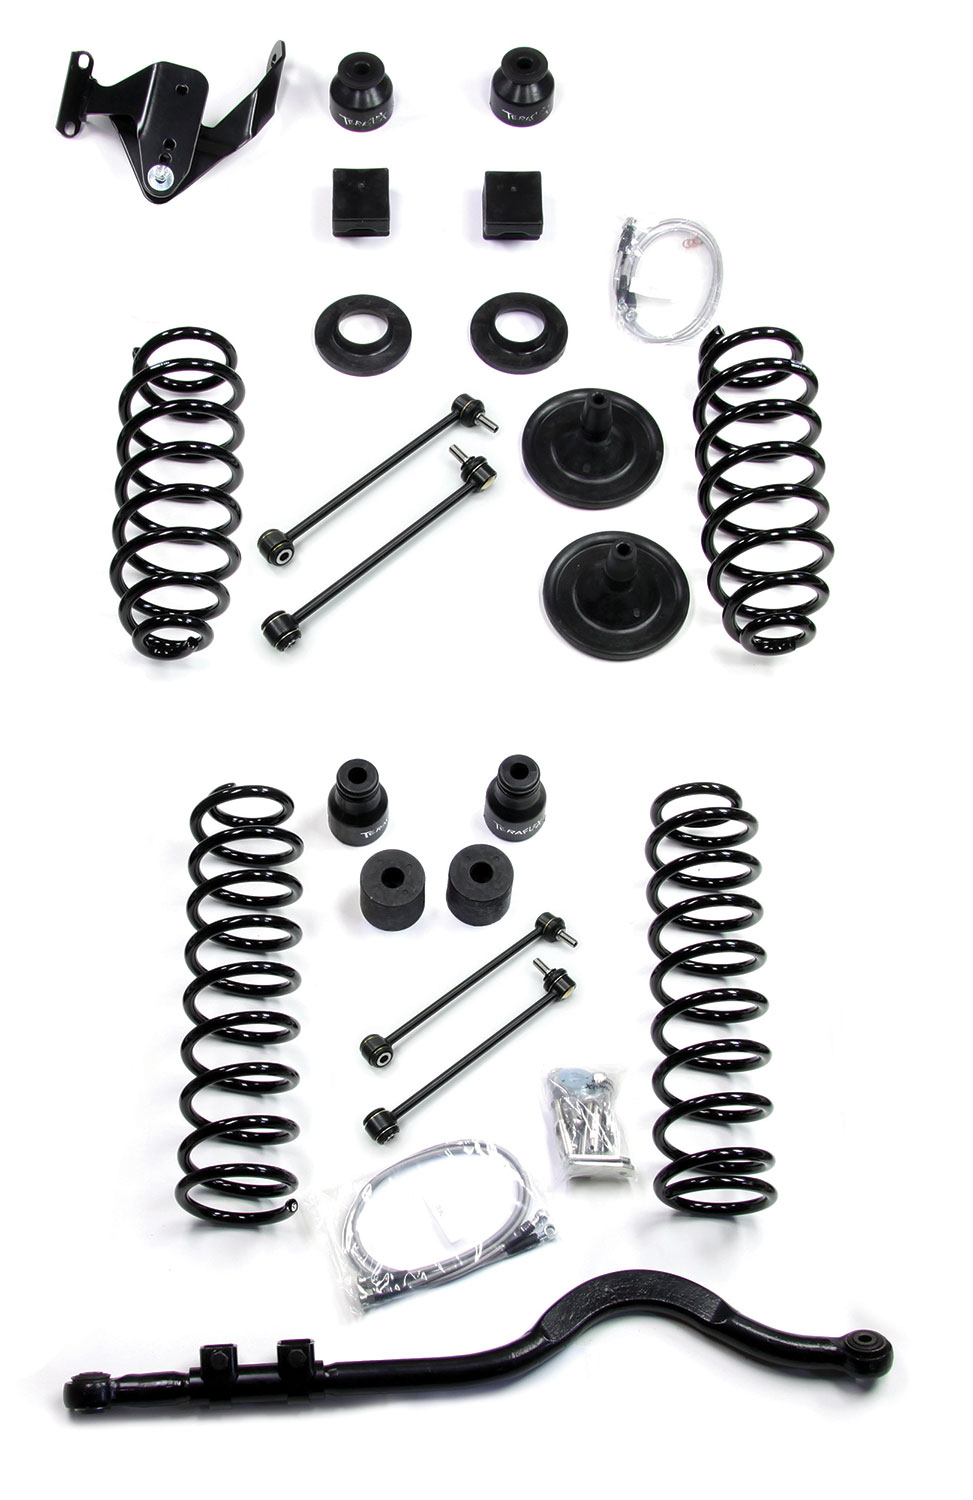 Teraflex 4in Lift Kit W/O Shocks - JK 4DR